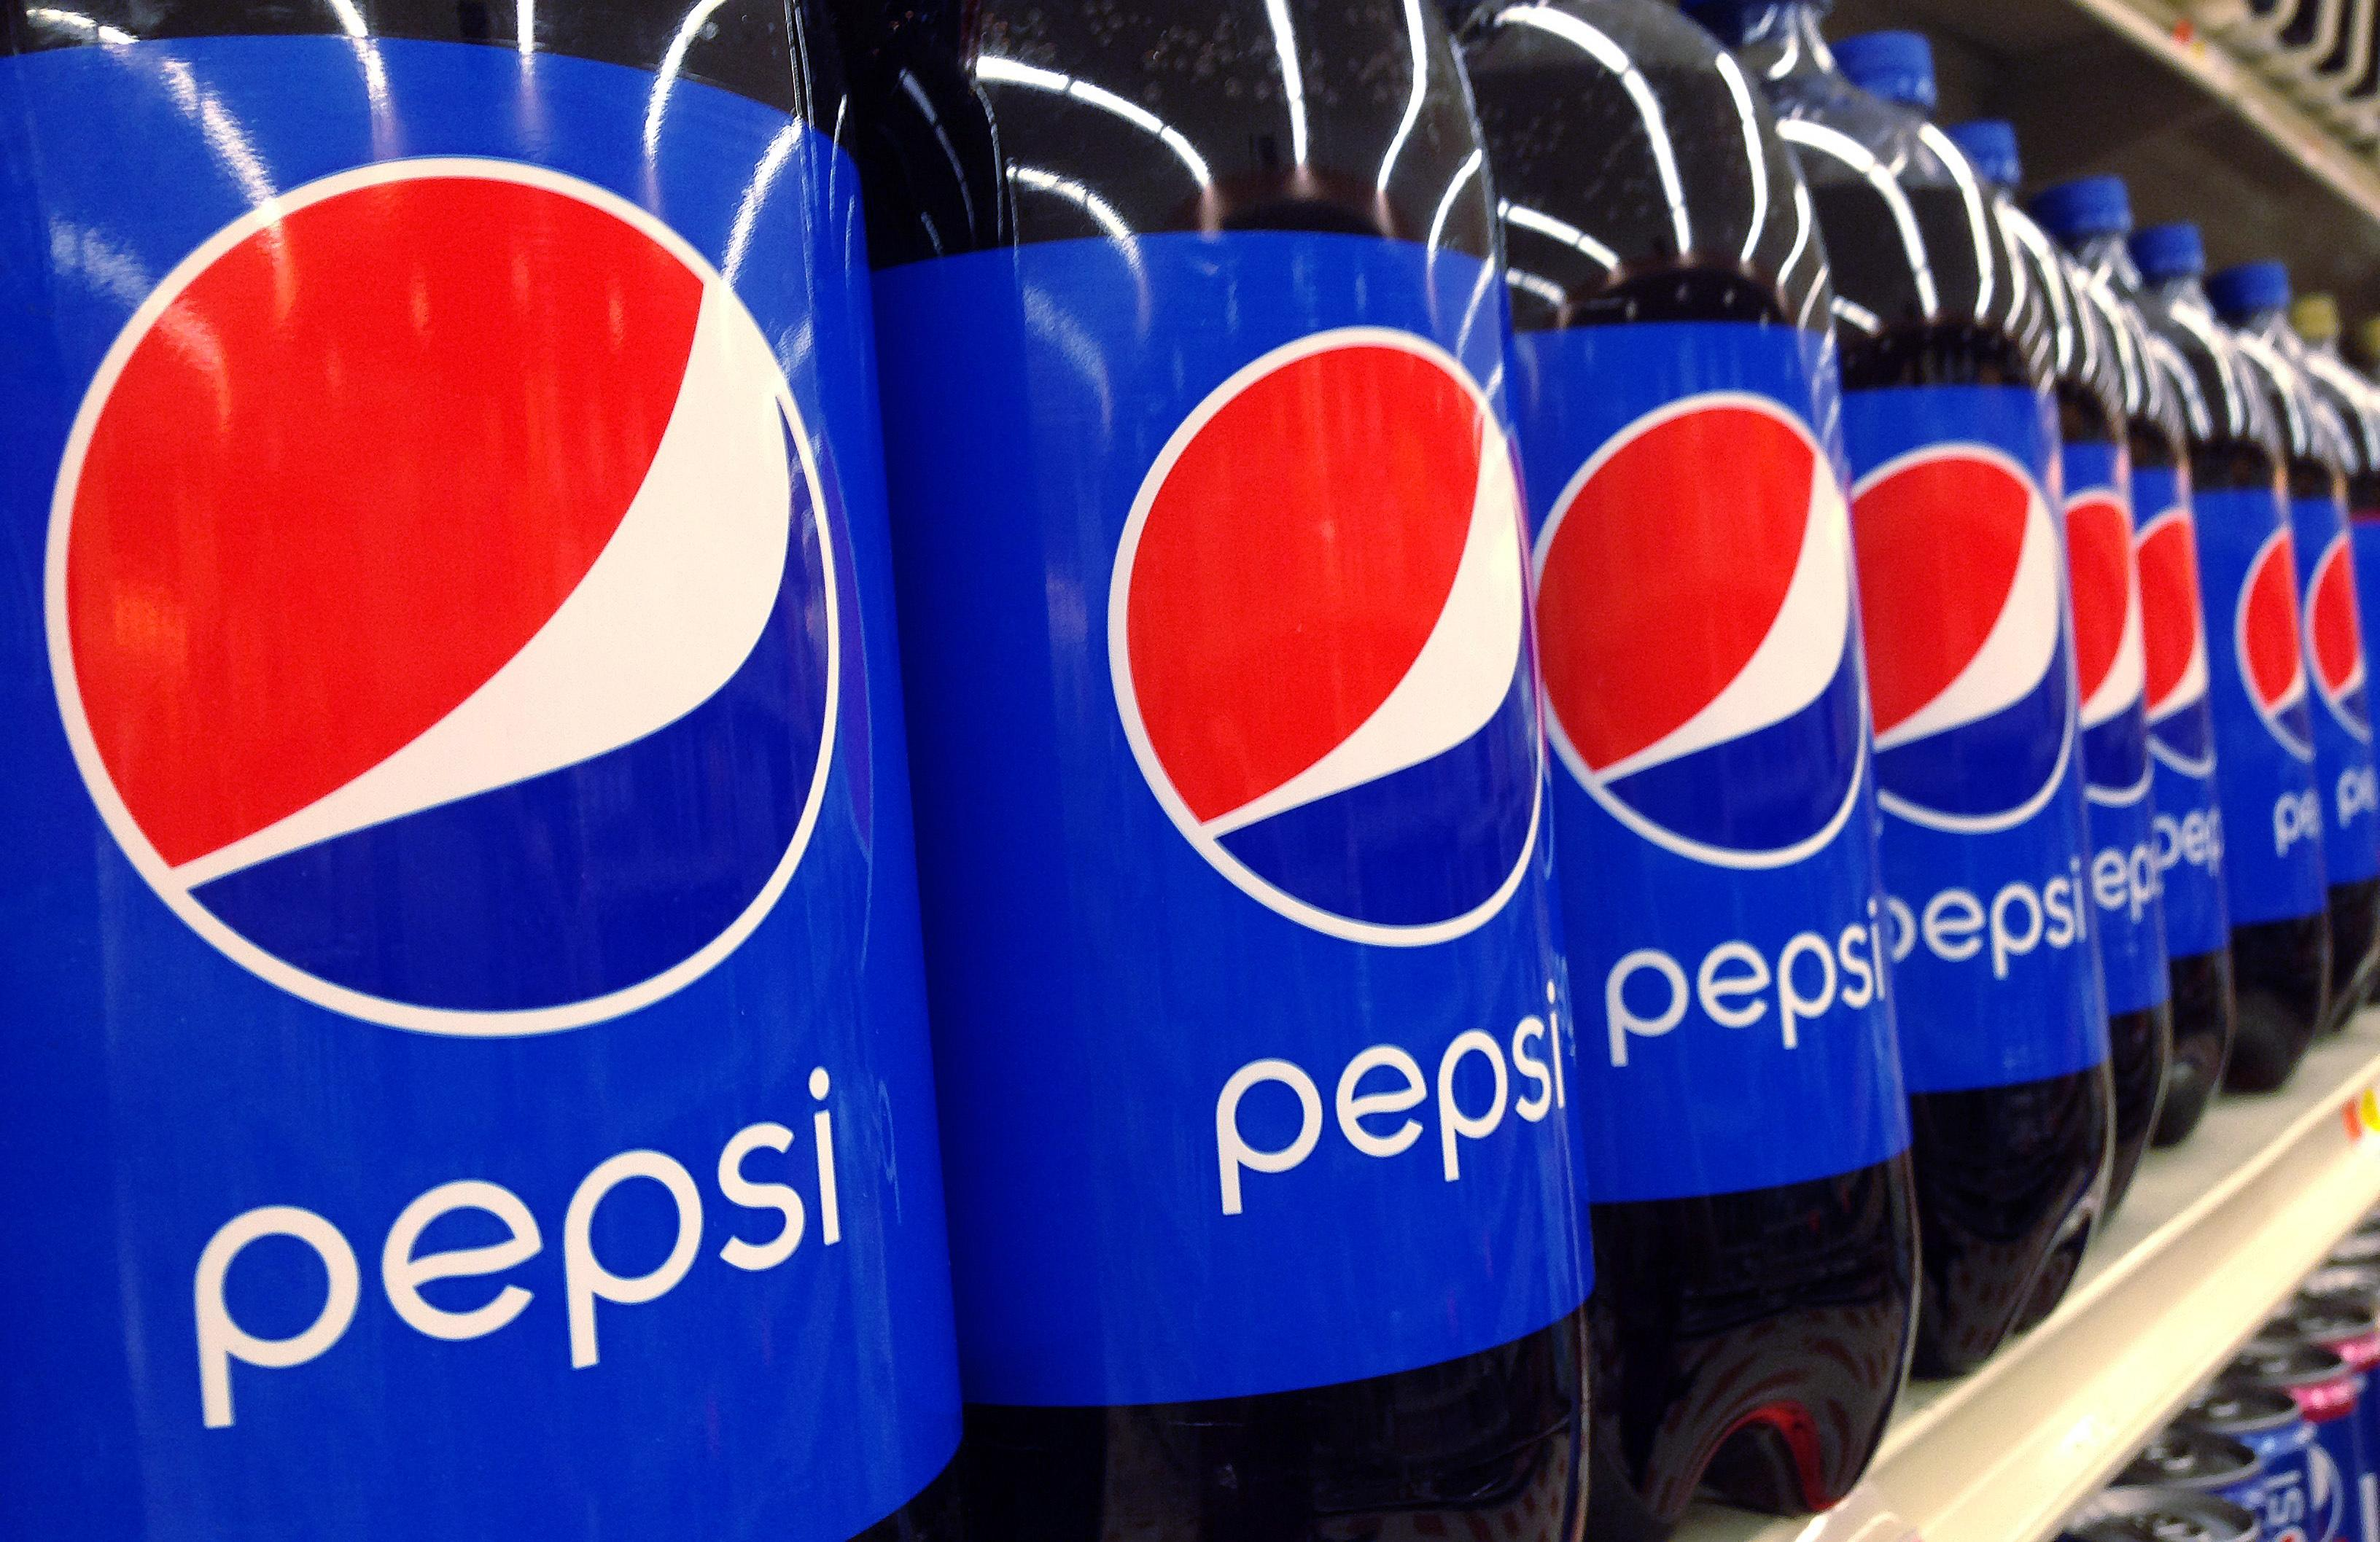 PepsiCo tops expectations, boosted by price hikes